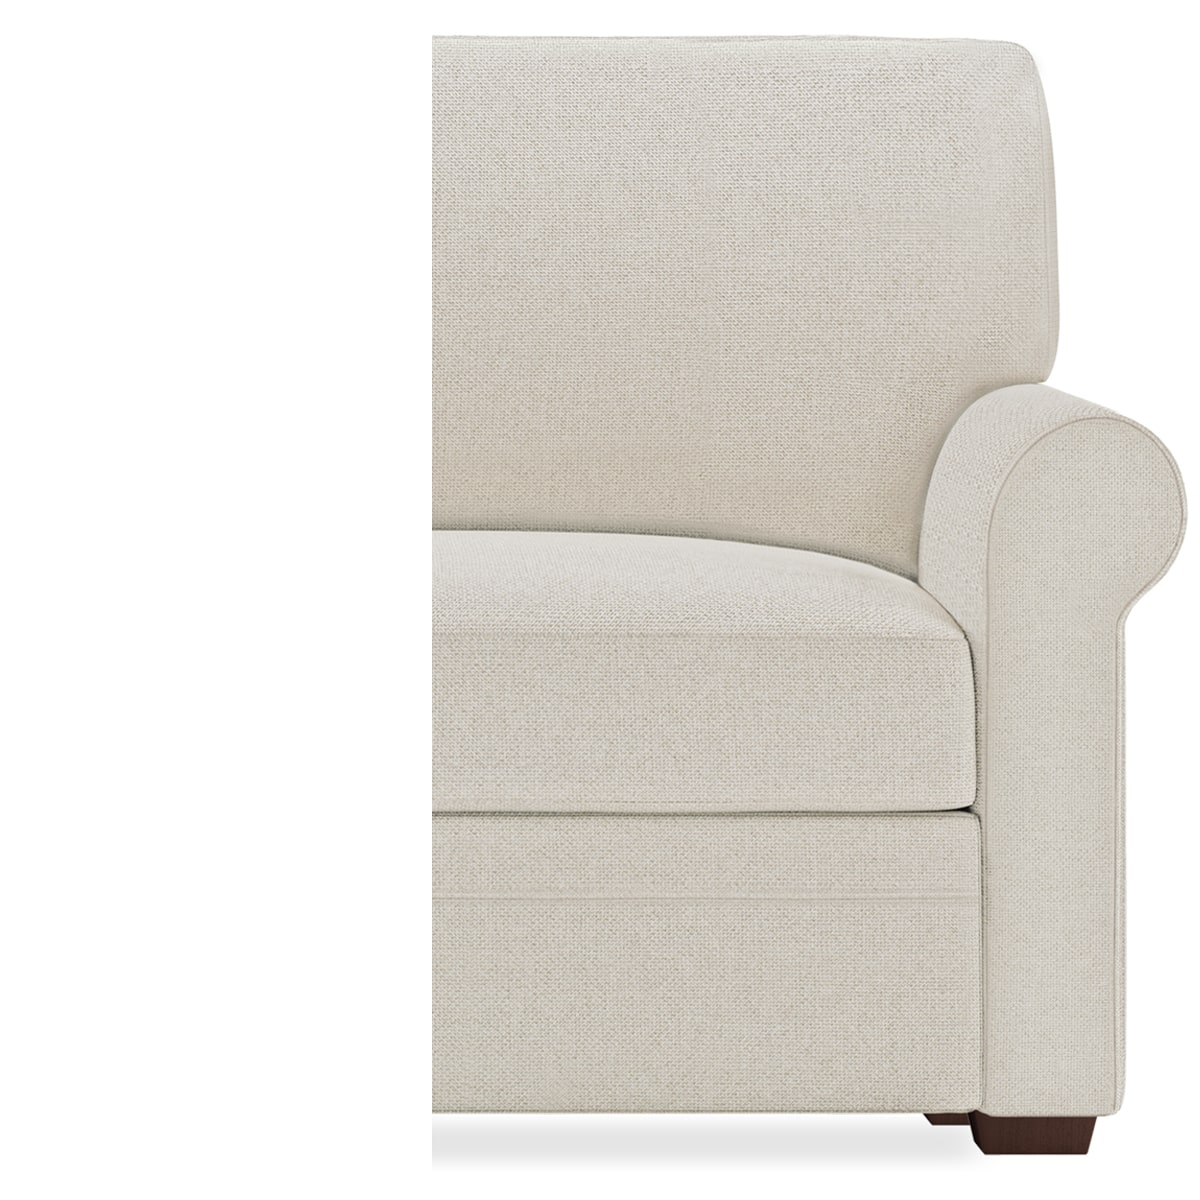 American Leather Gaines Comfort Sleeper--clean, simple, stylish